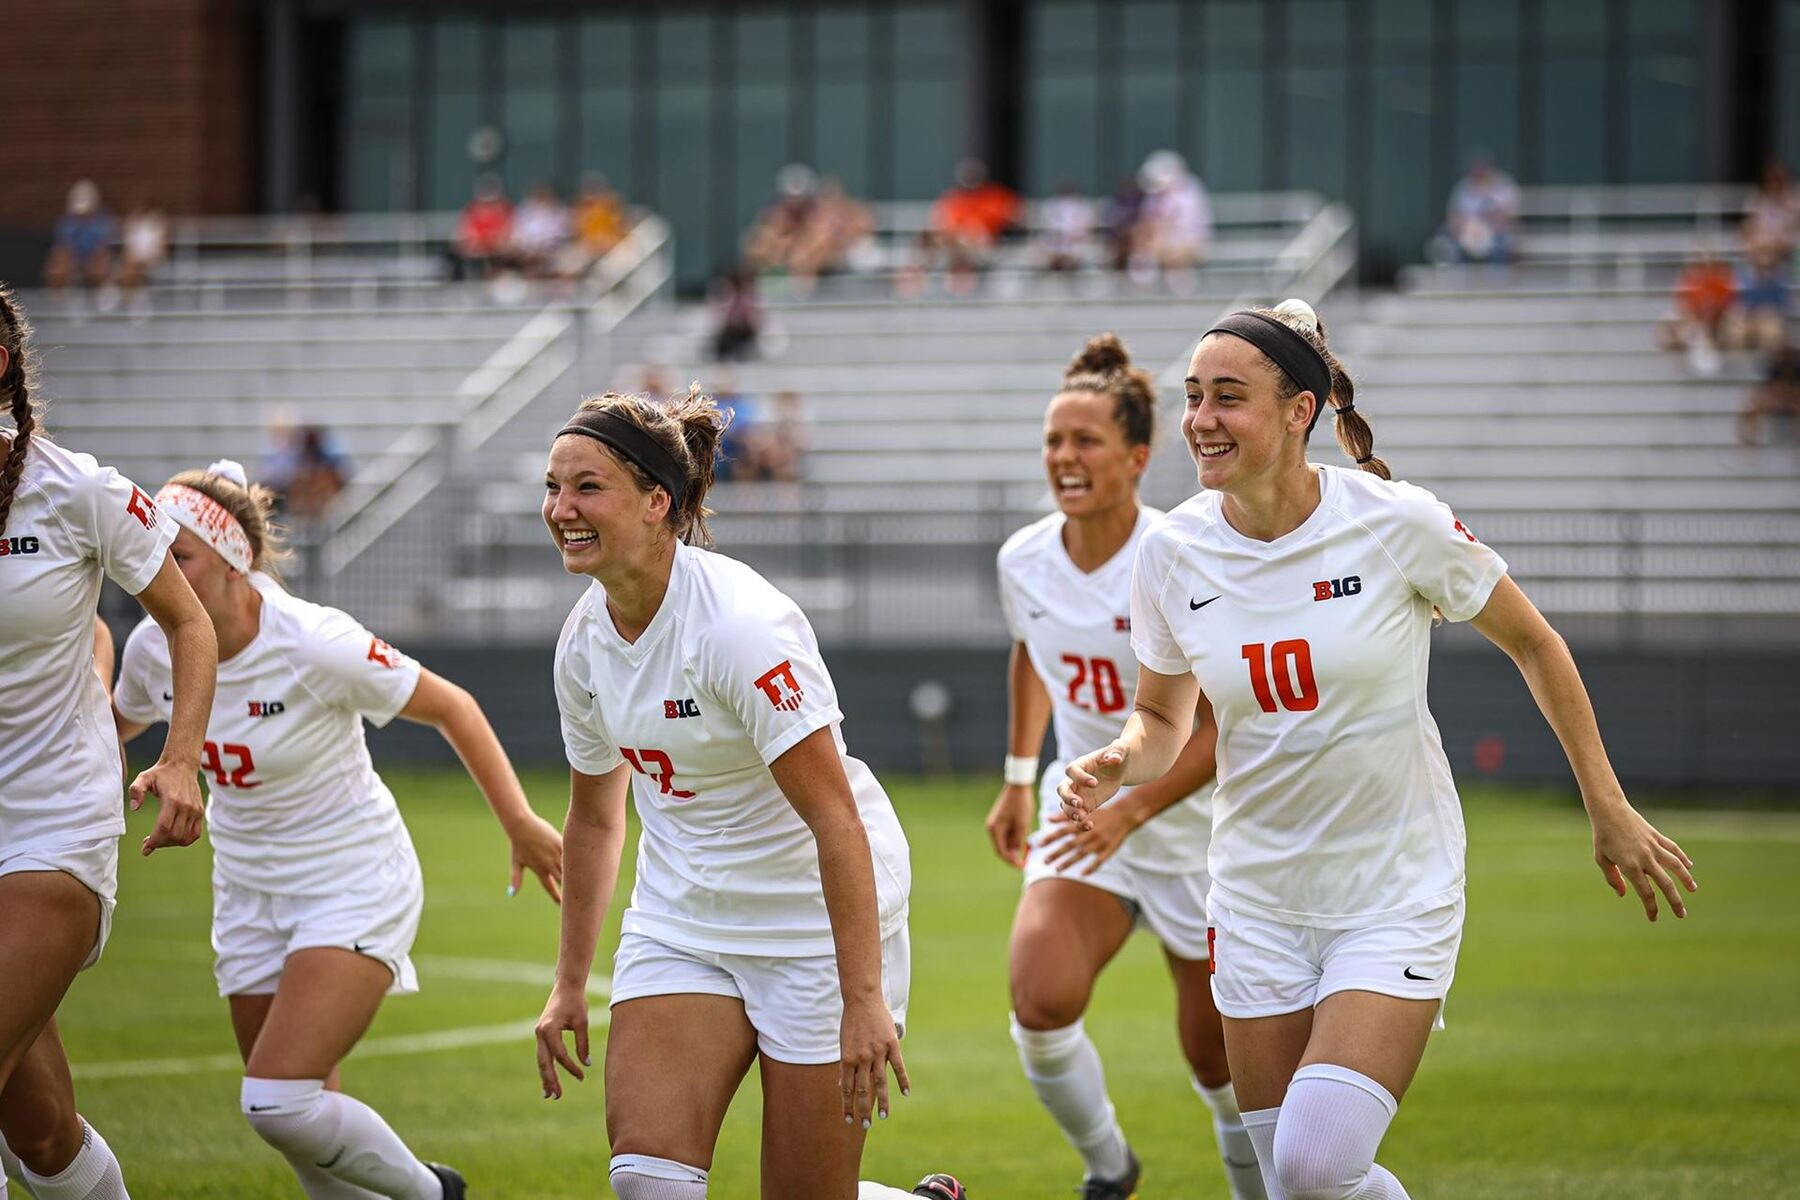 Smiling Illini Soccer players run off the field